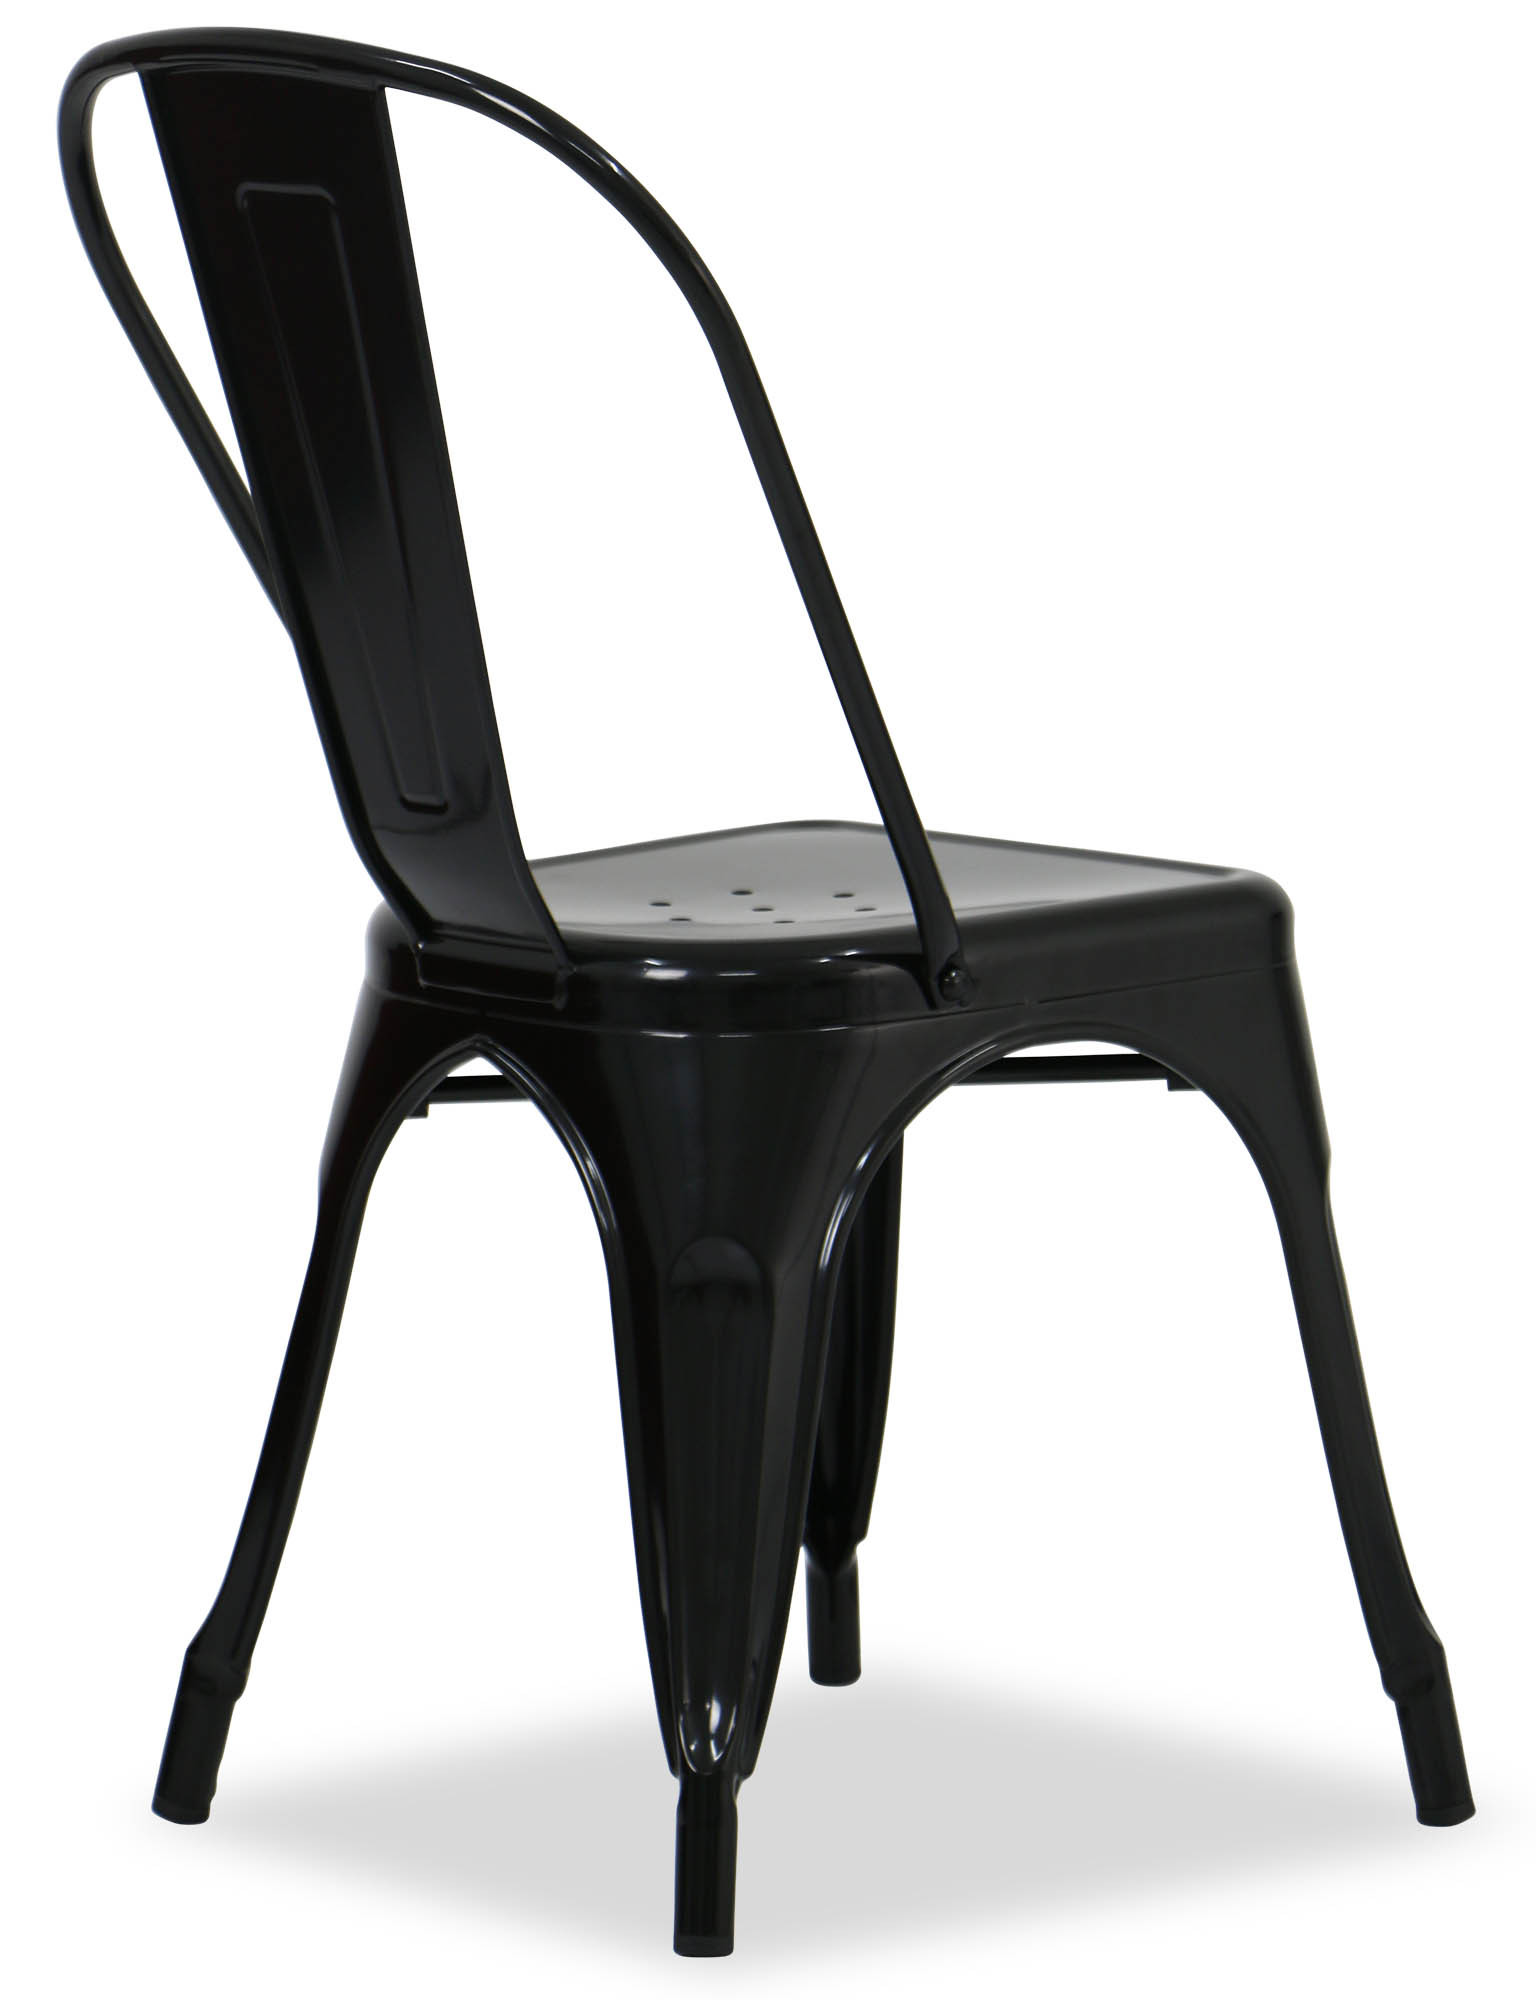 outdoor metal chair. Retro Metal Chair Black. 141 Customer Reviews Outdoor